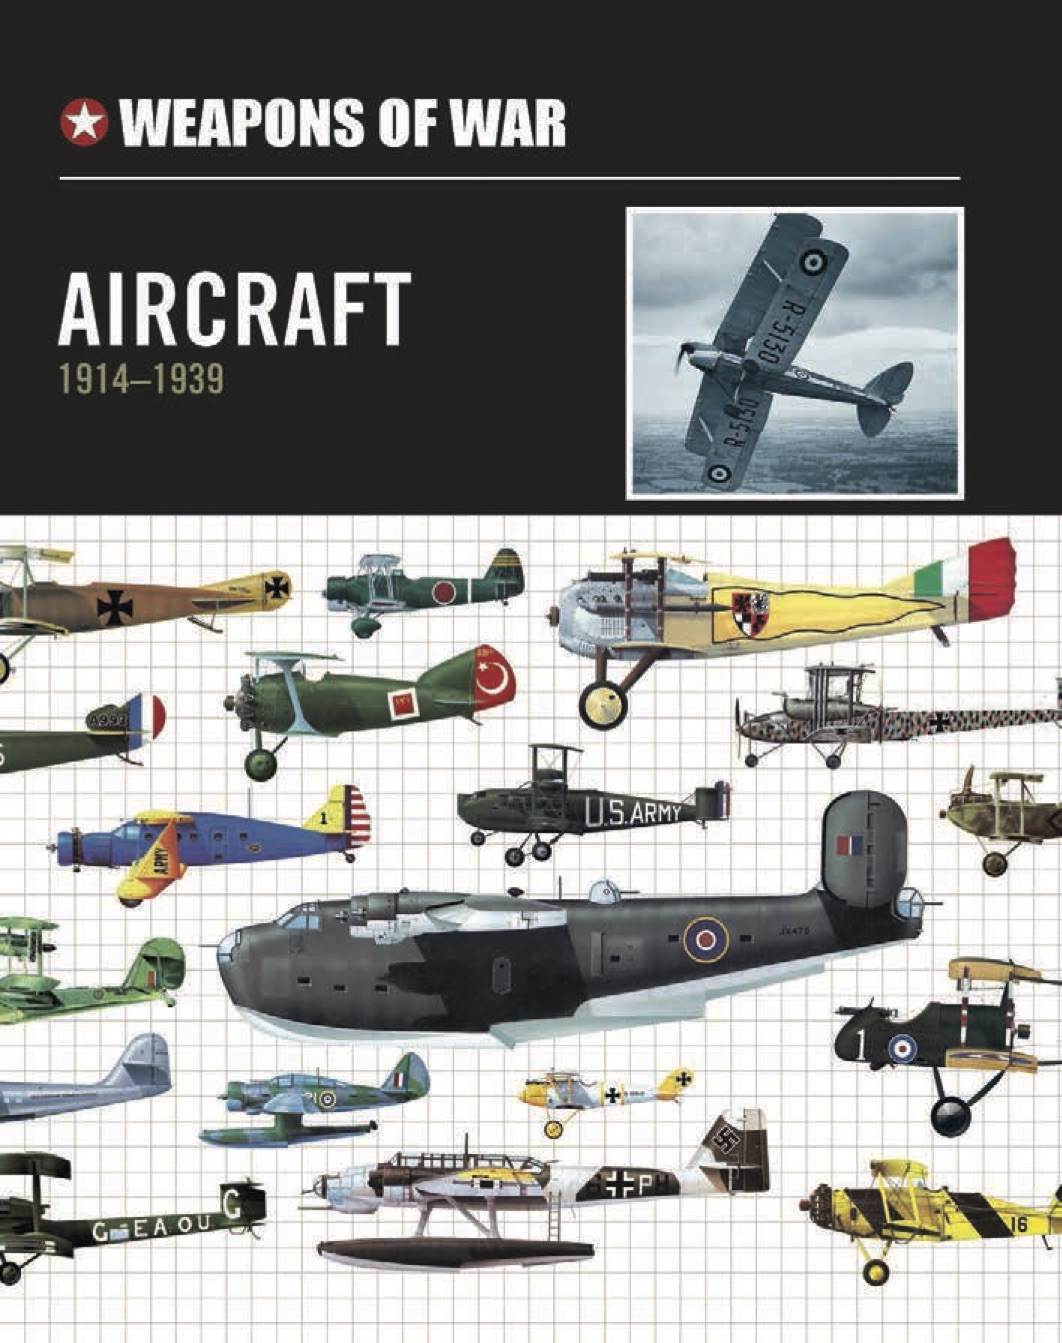 Aircraft 1914-1939 – Weapons of War